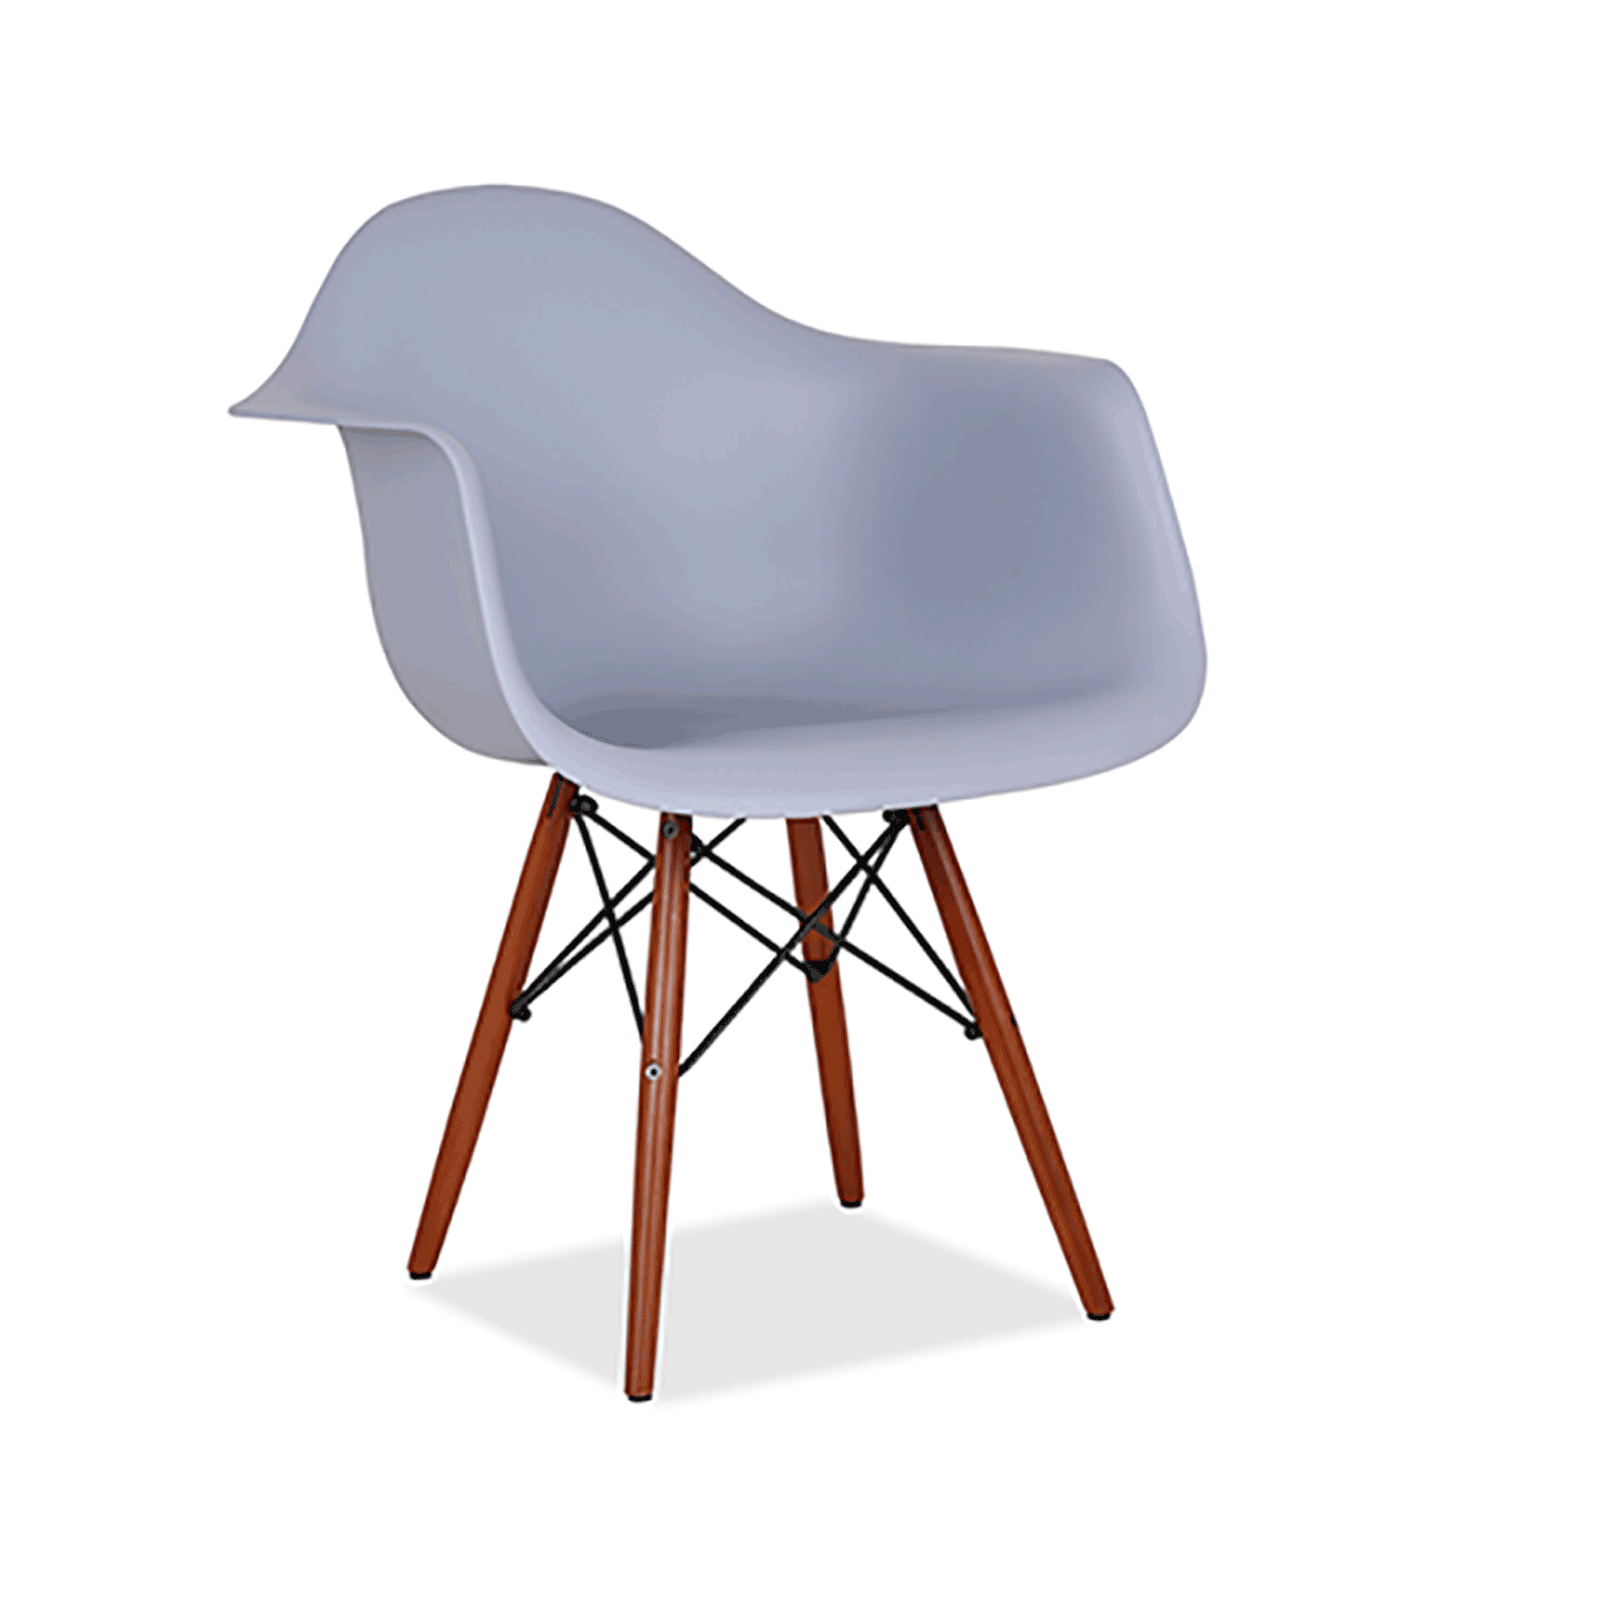 It's Time to Design Your Workspace with Brand New Office Chairs